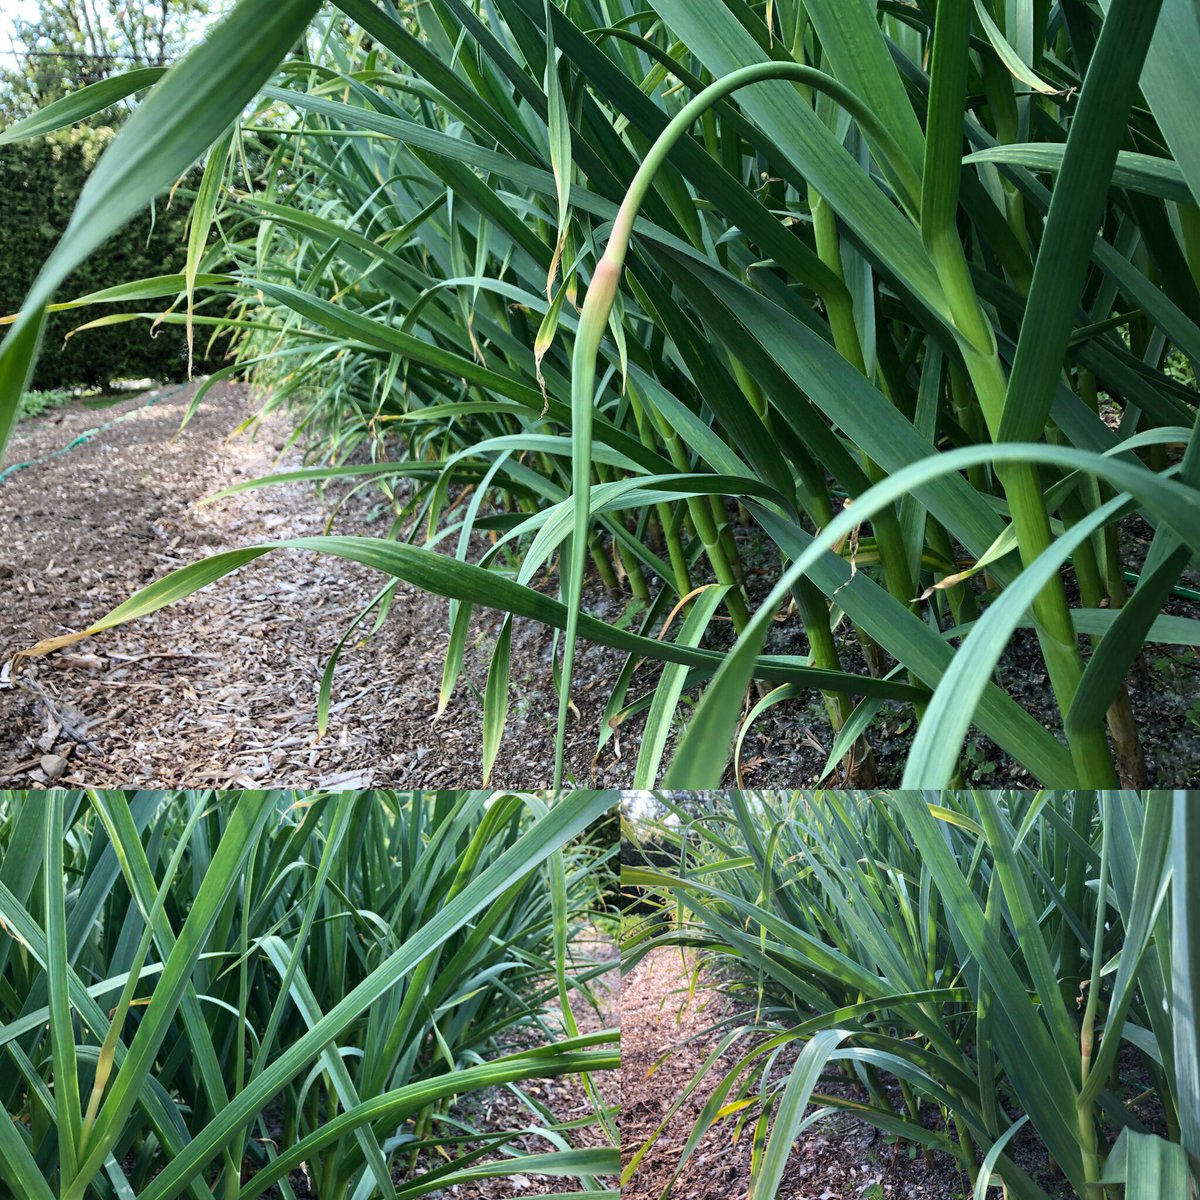 Look what we found 👀! #garlicscapes are starting to emerge! It's looking like they might be ready for next weekend!! Stay tuned!!!  #smallfarm #farmdirect #garlicfarm #local #natural #mapleridge #food #garlic #redrussiangarlic #vegetables #scapes #bcbuylocal #bcfarmfresh https://t.co/pvzIITEeQY